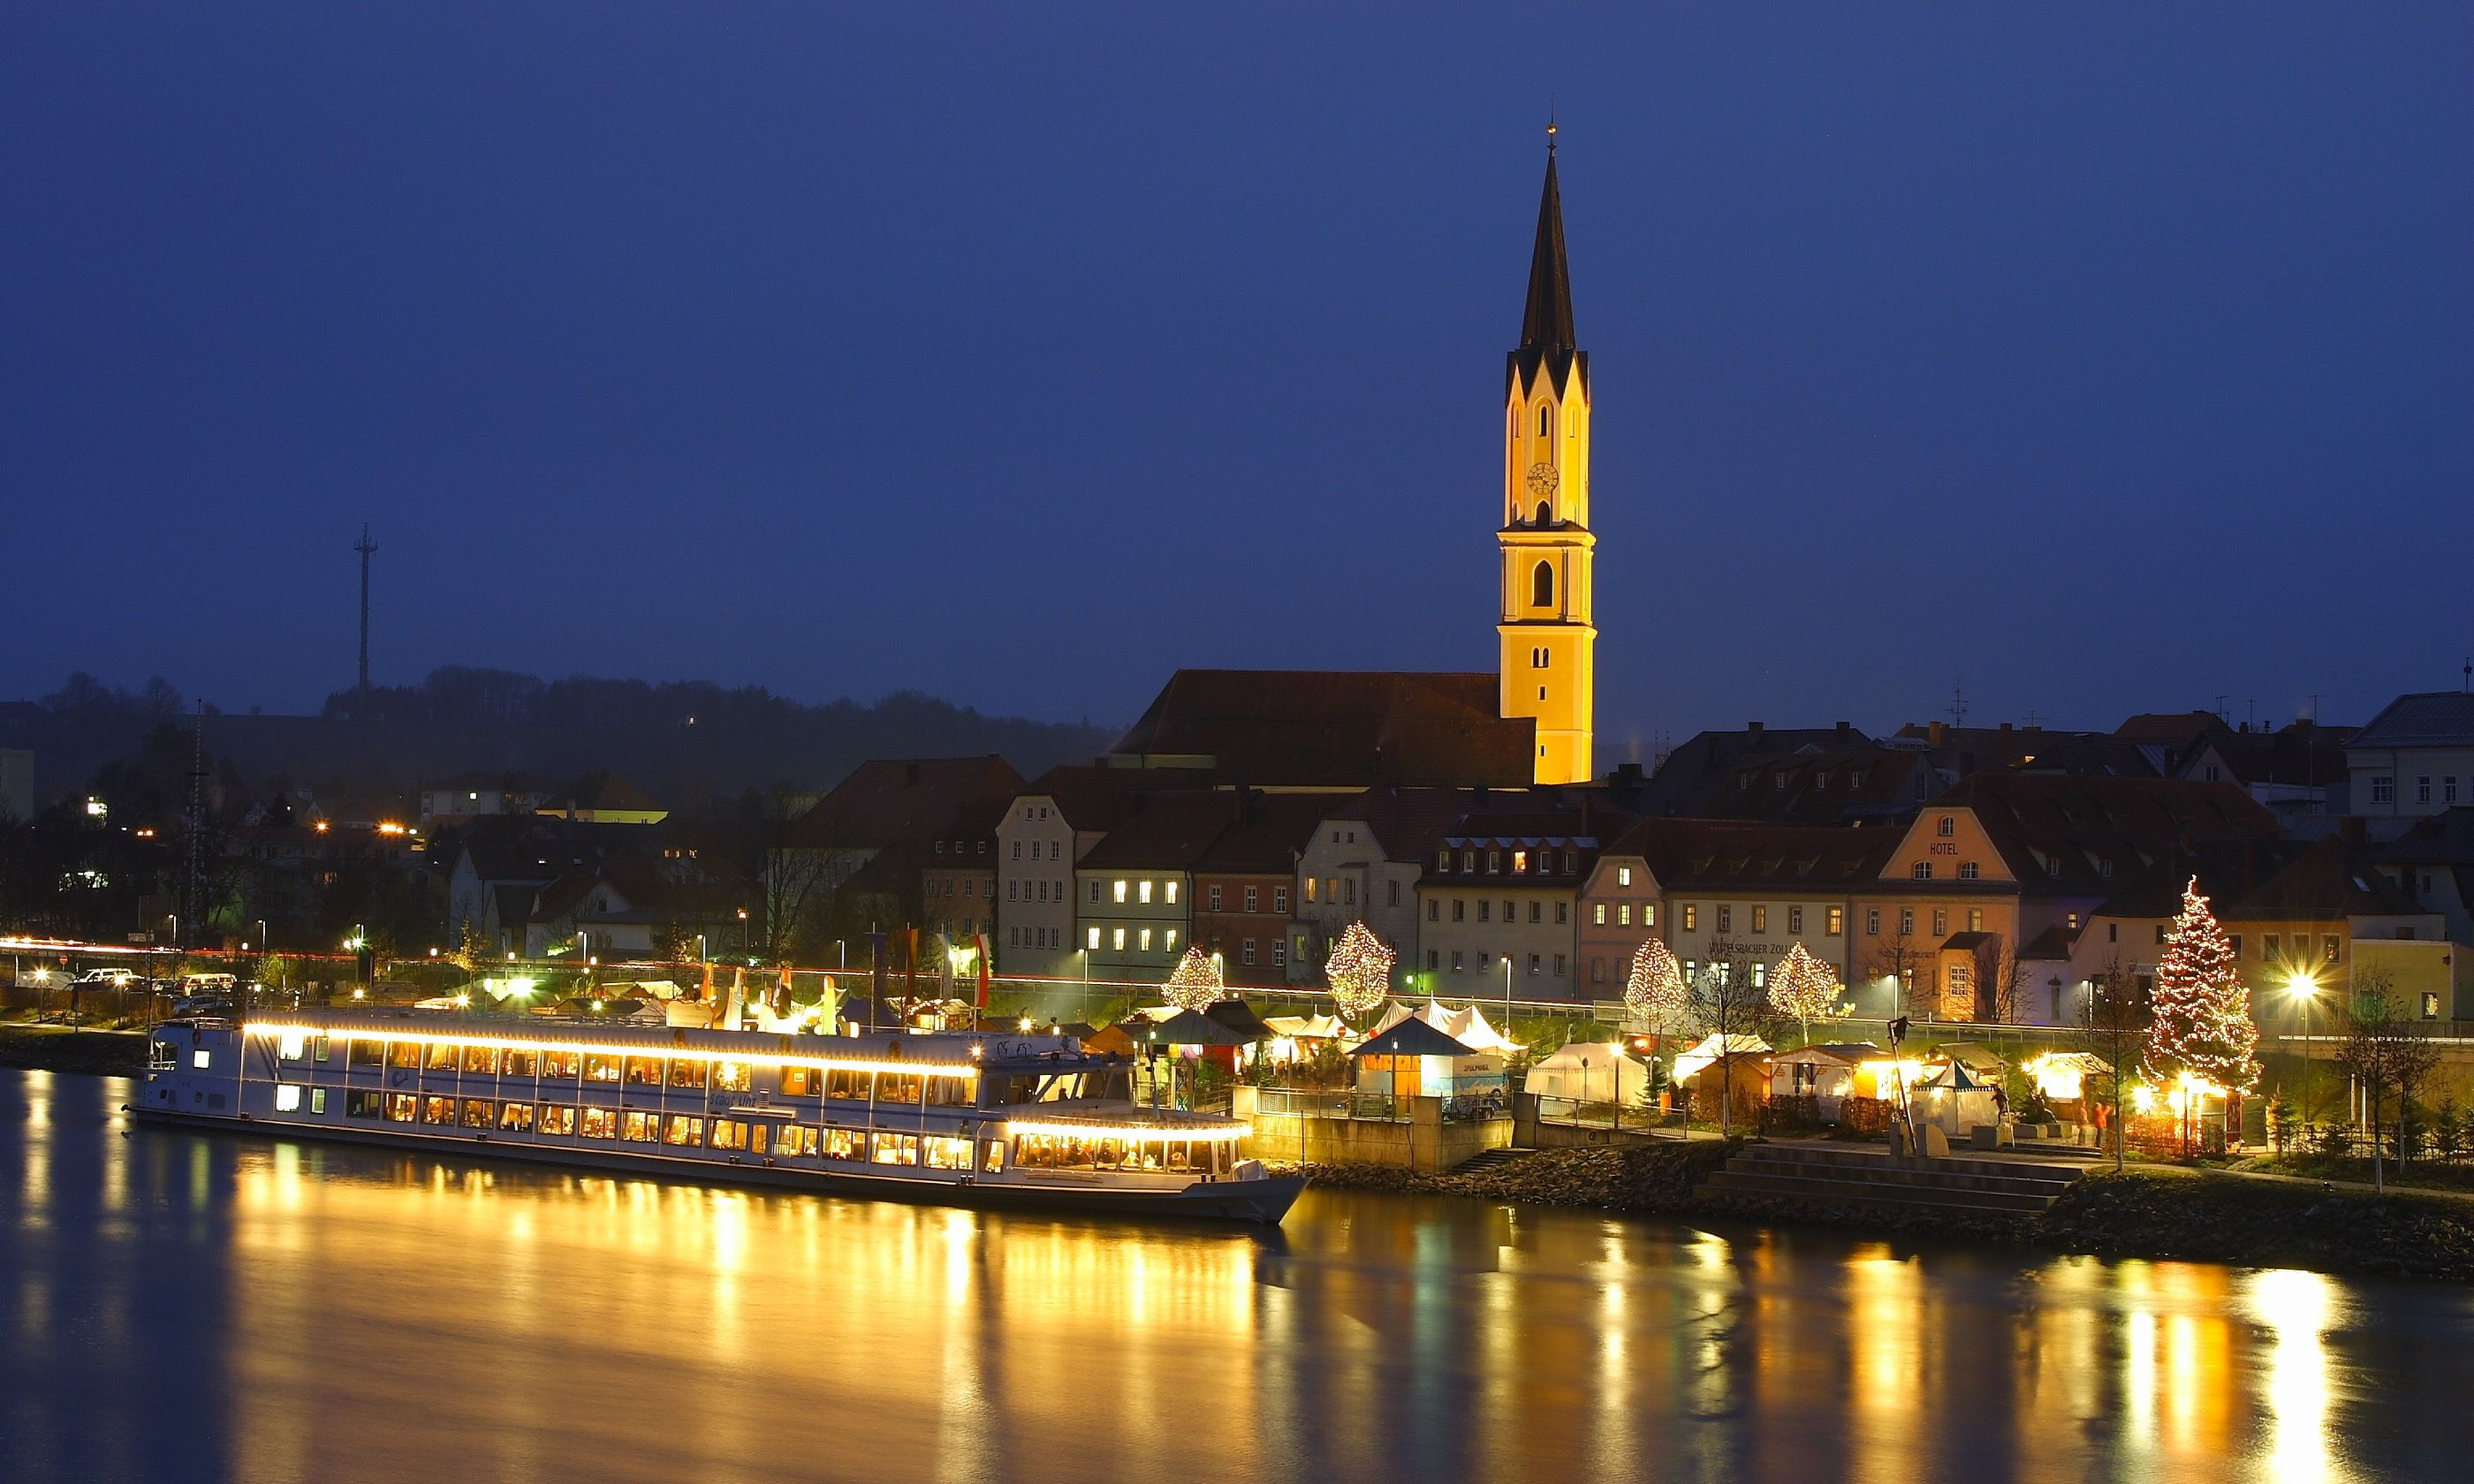 The floating Christmas markets in Vilshofen (Tourist-Information Passauer Land)